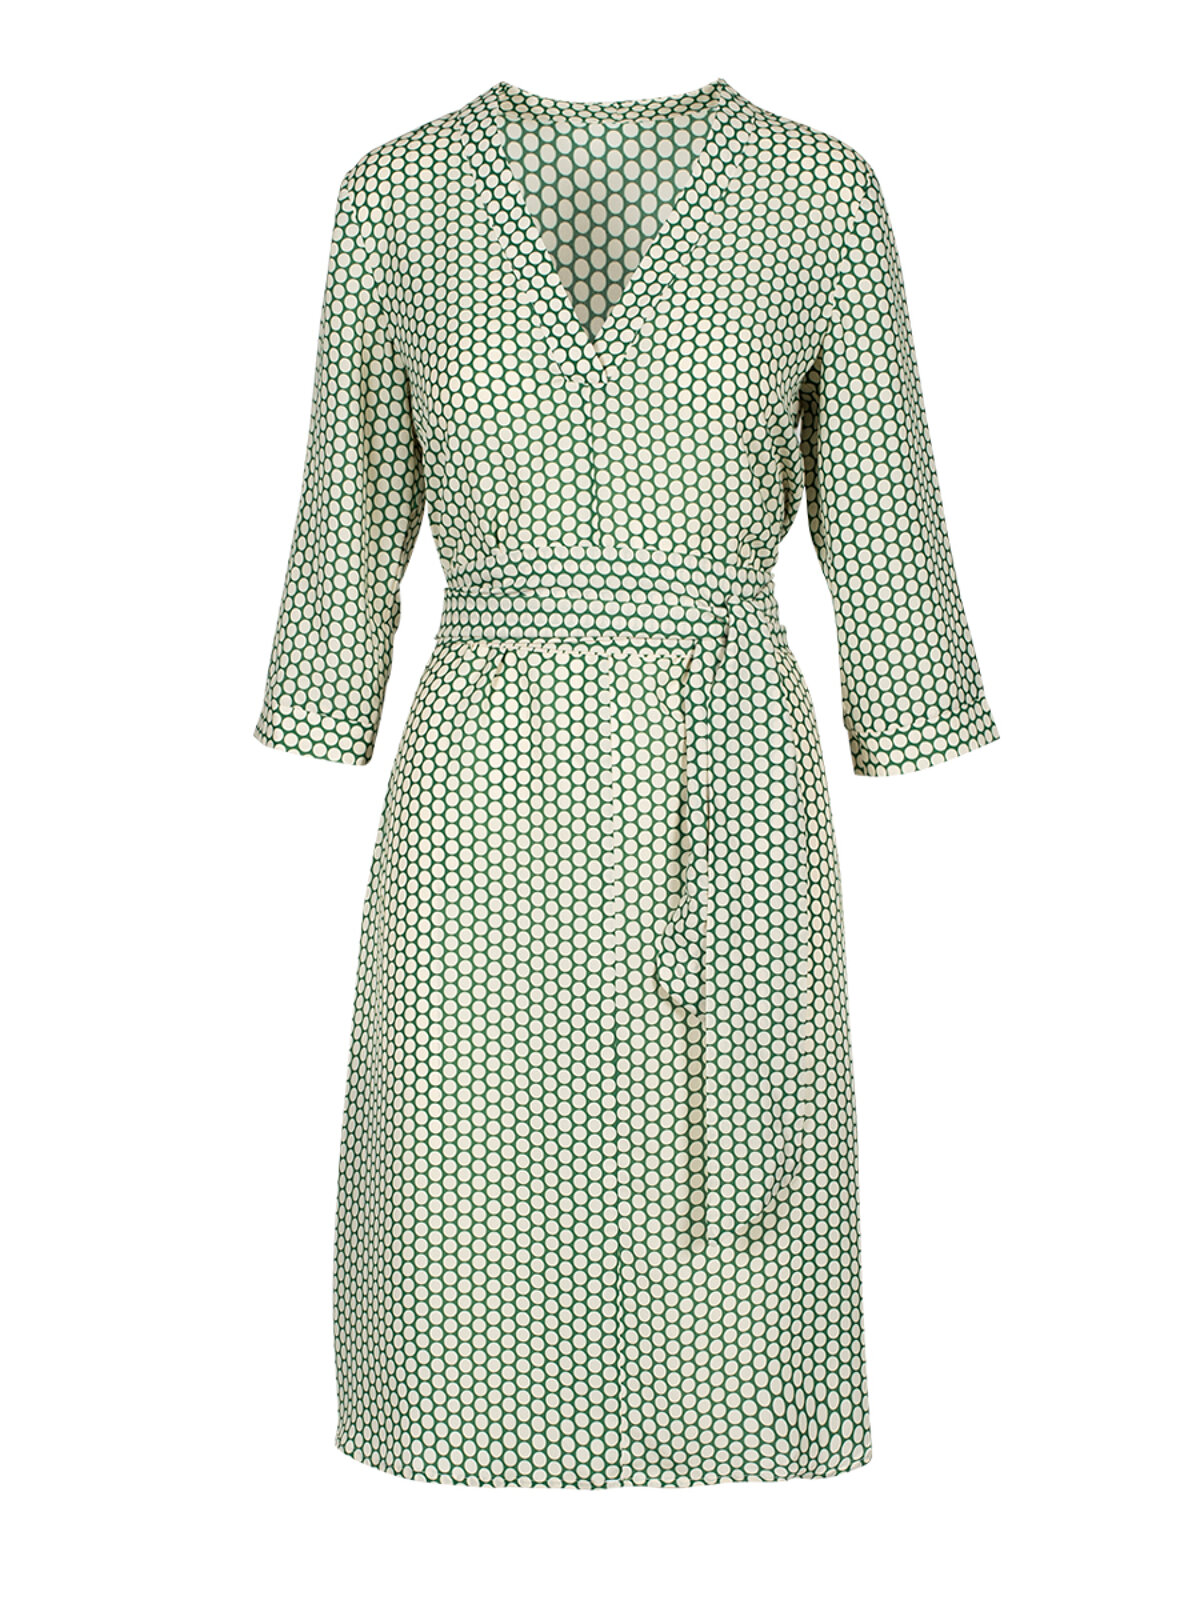 Diana Green Dots Dress - Anonyme Designers